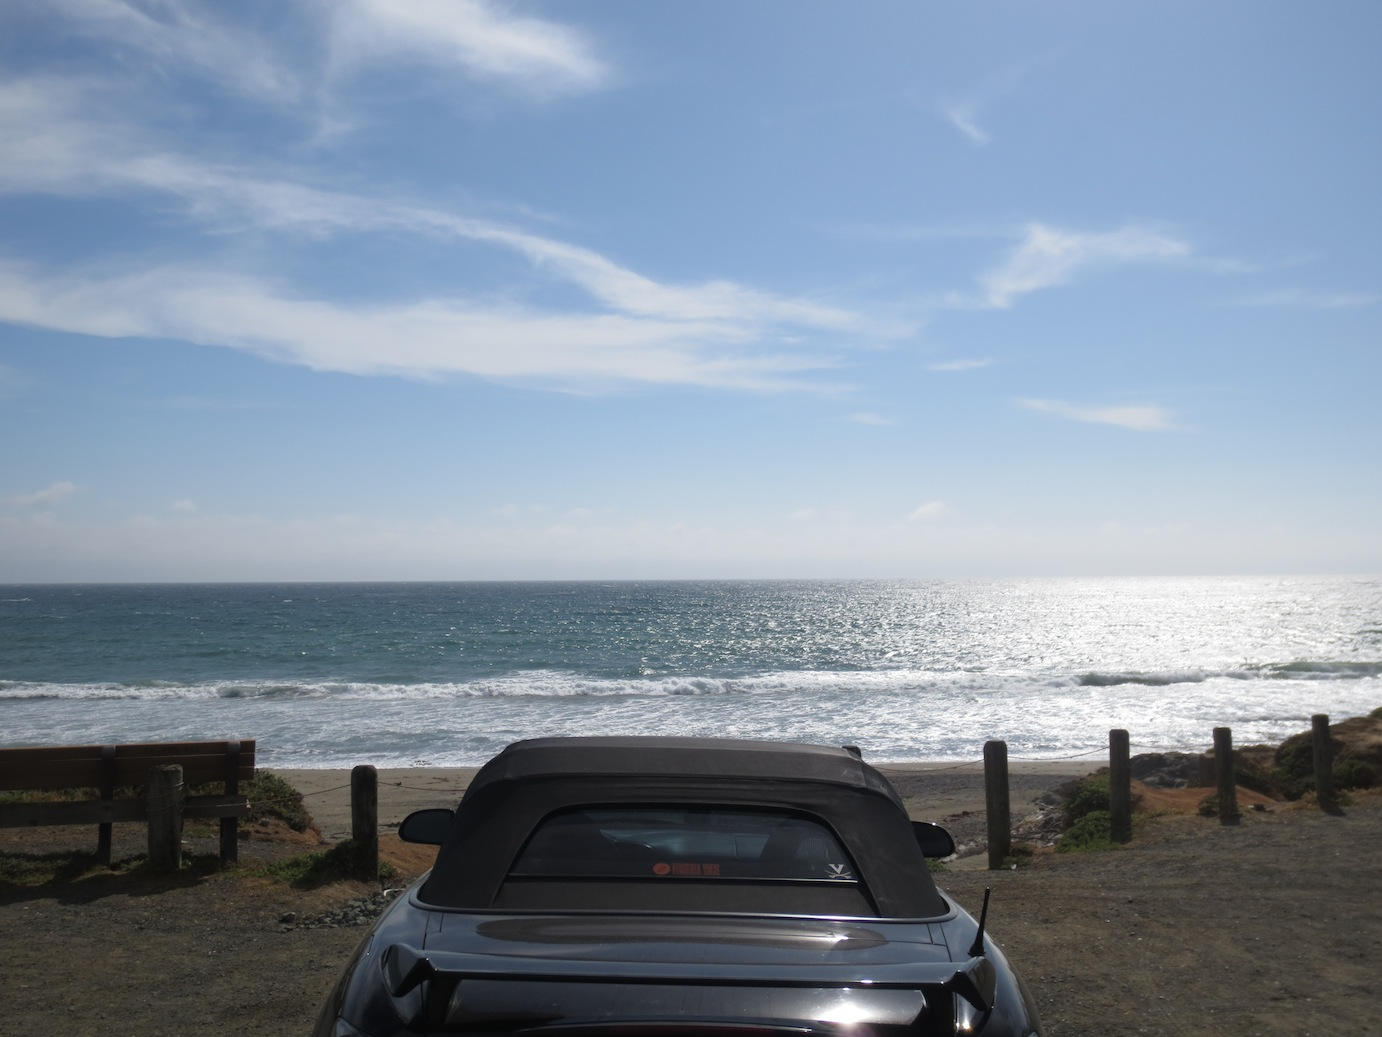 View of the Pacific Ocean from behind my S2000